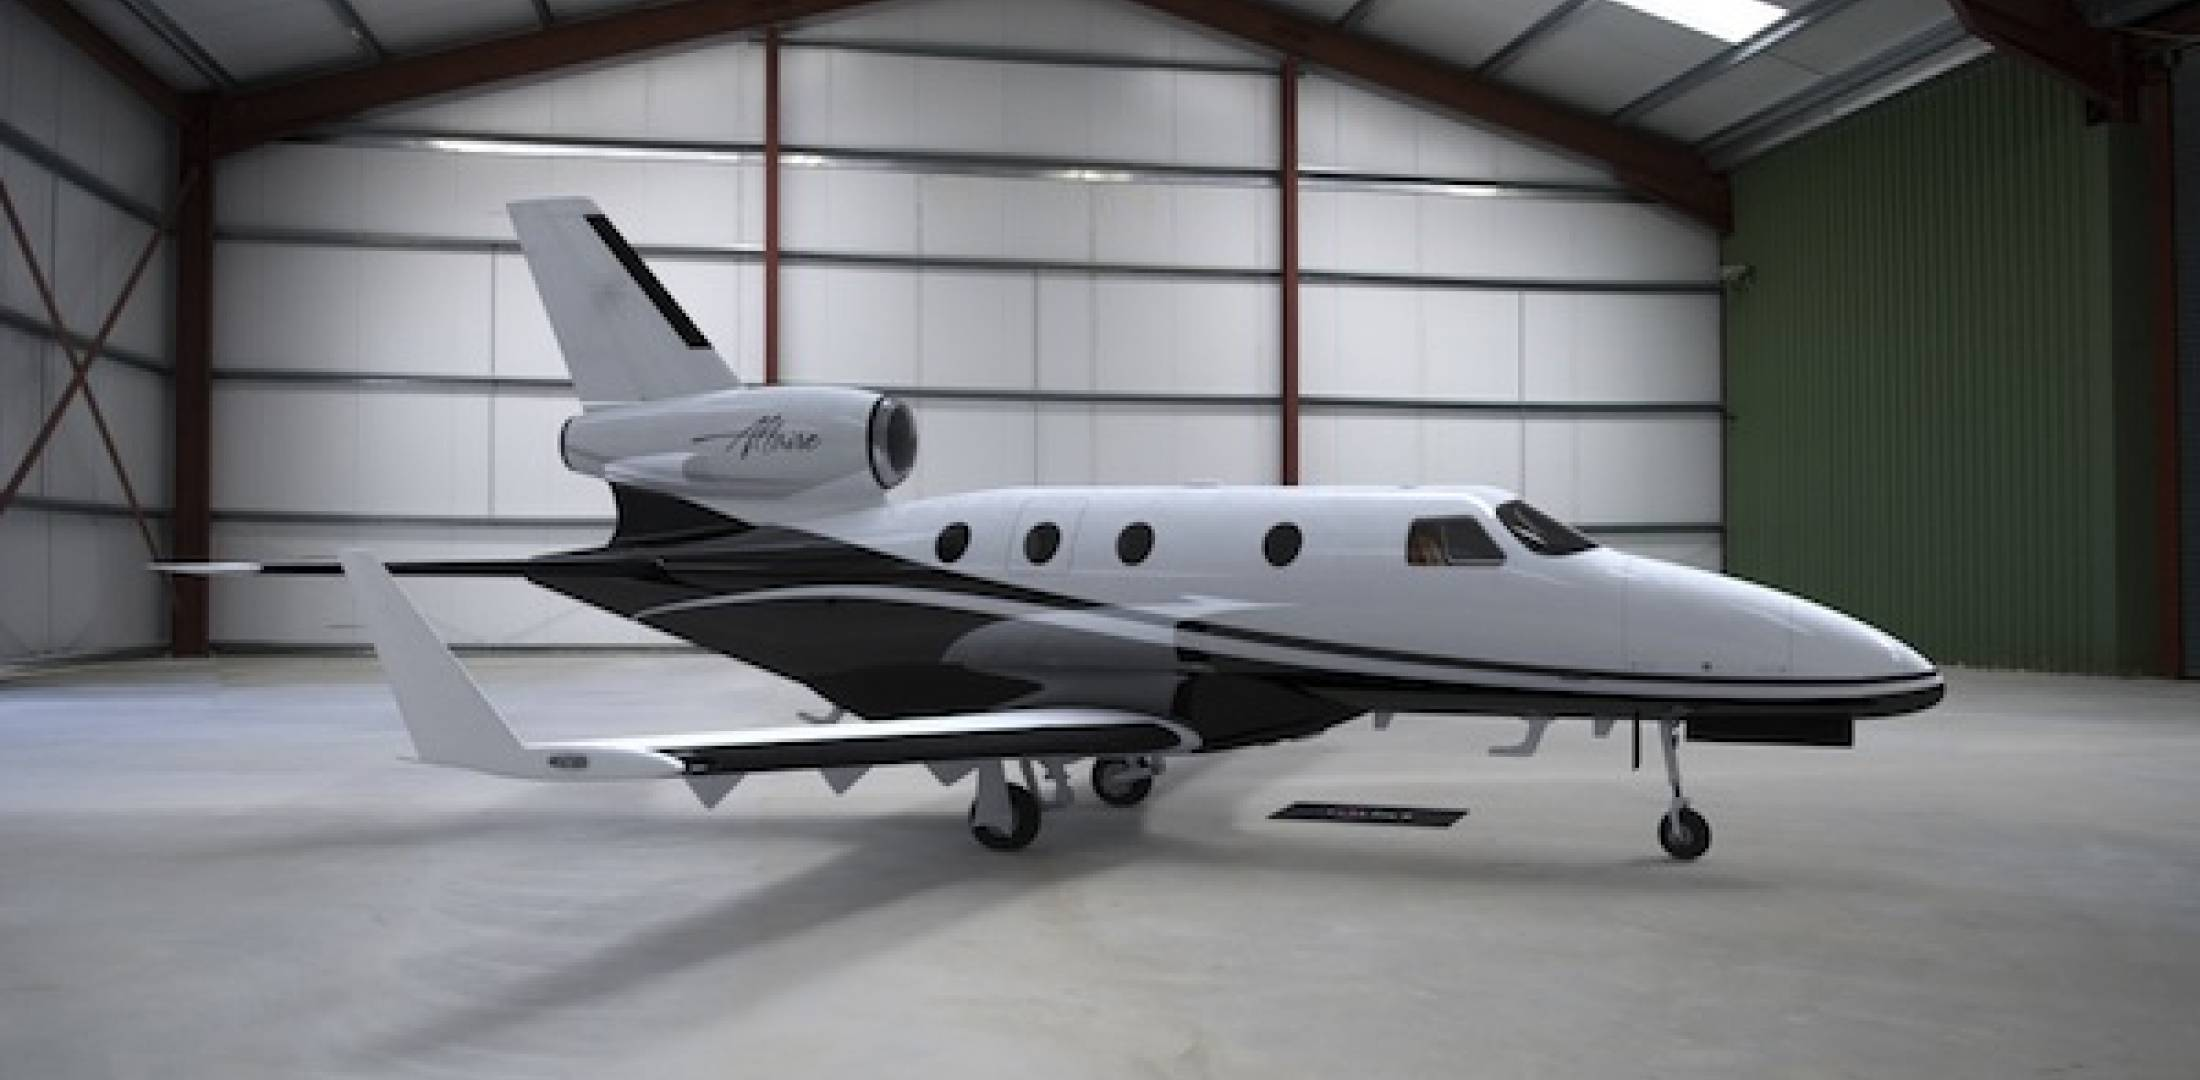 PiperJet Altaire